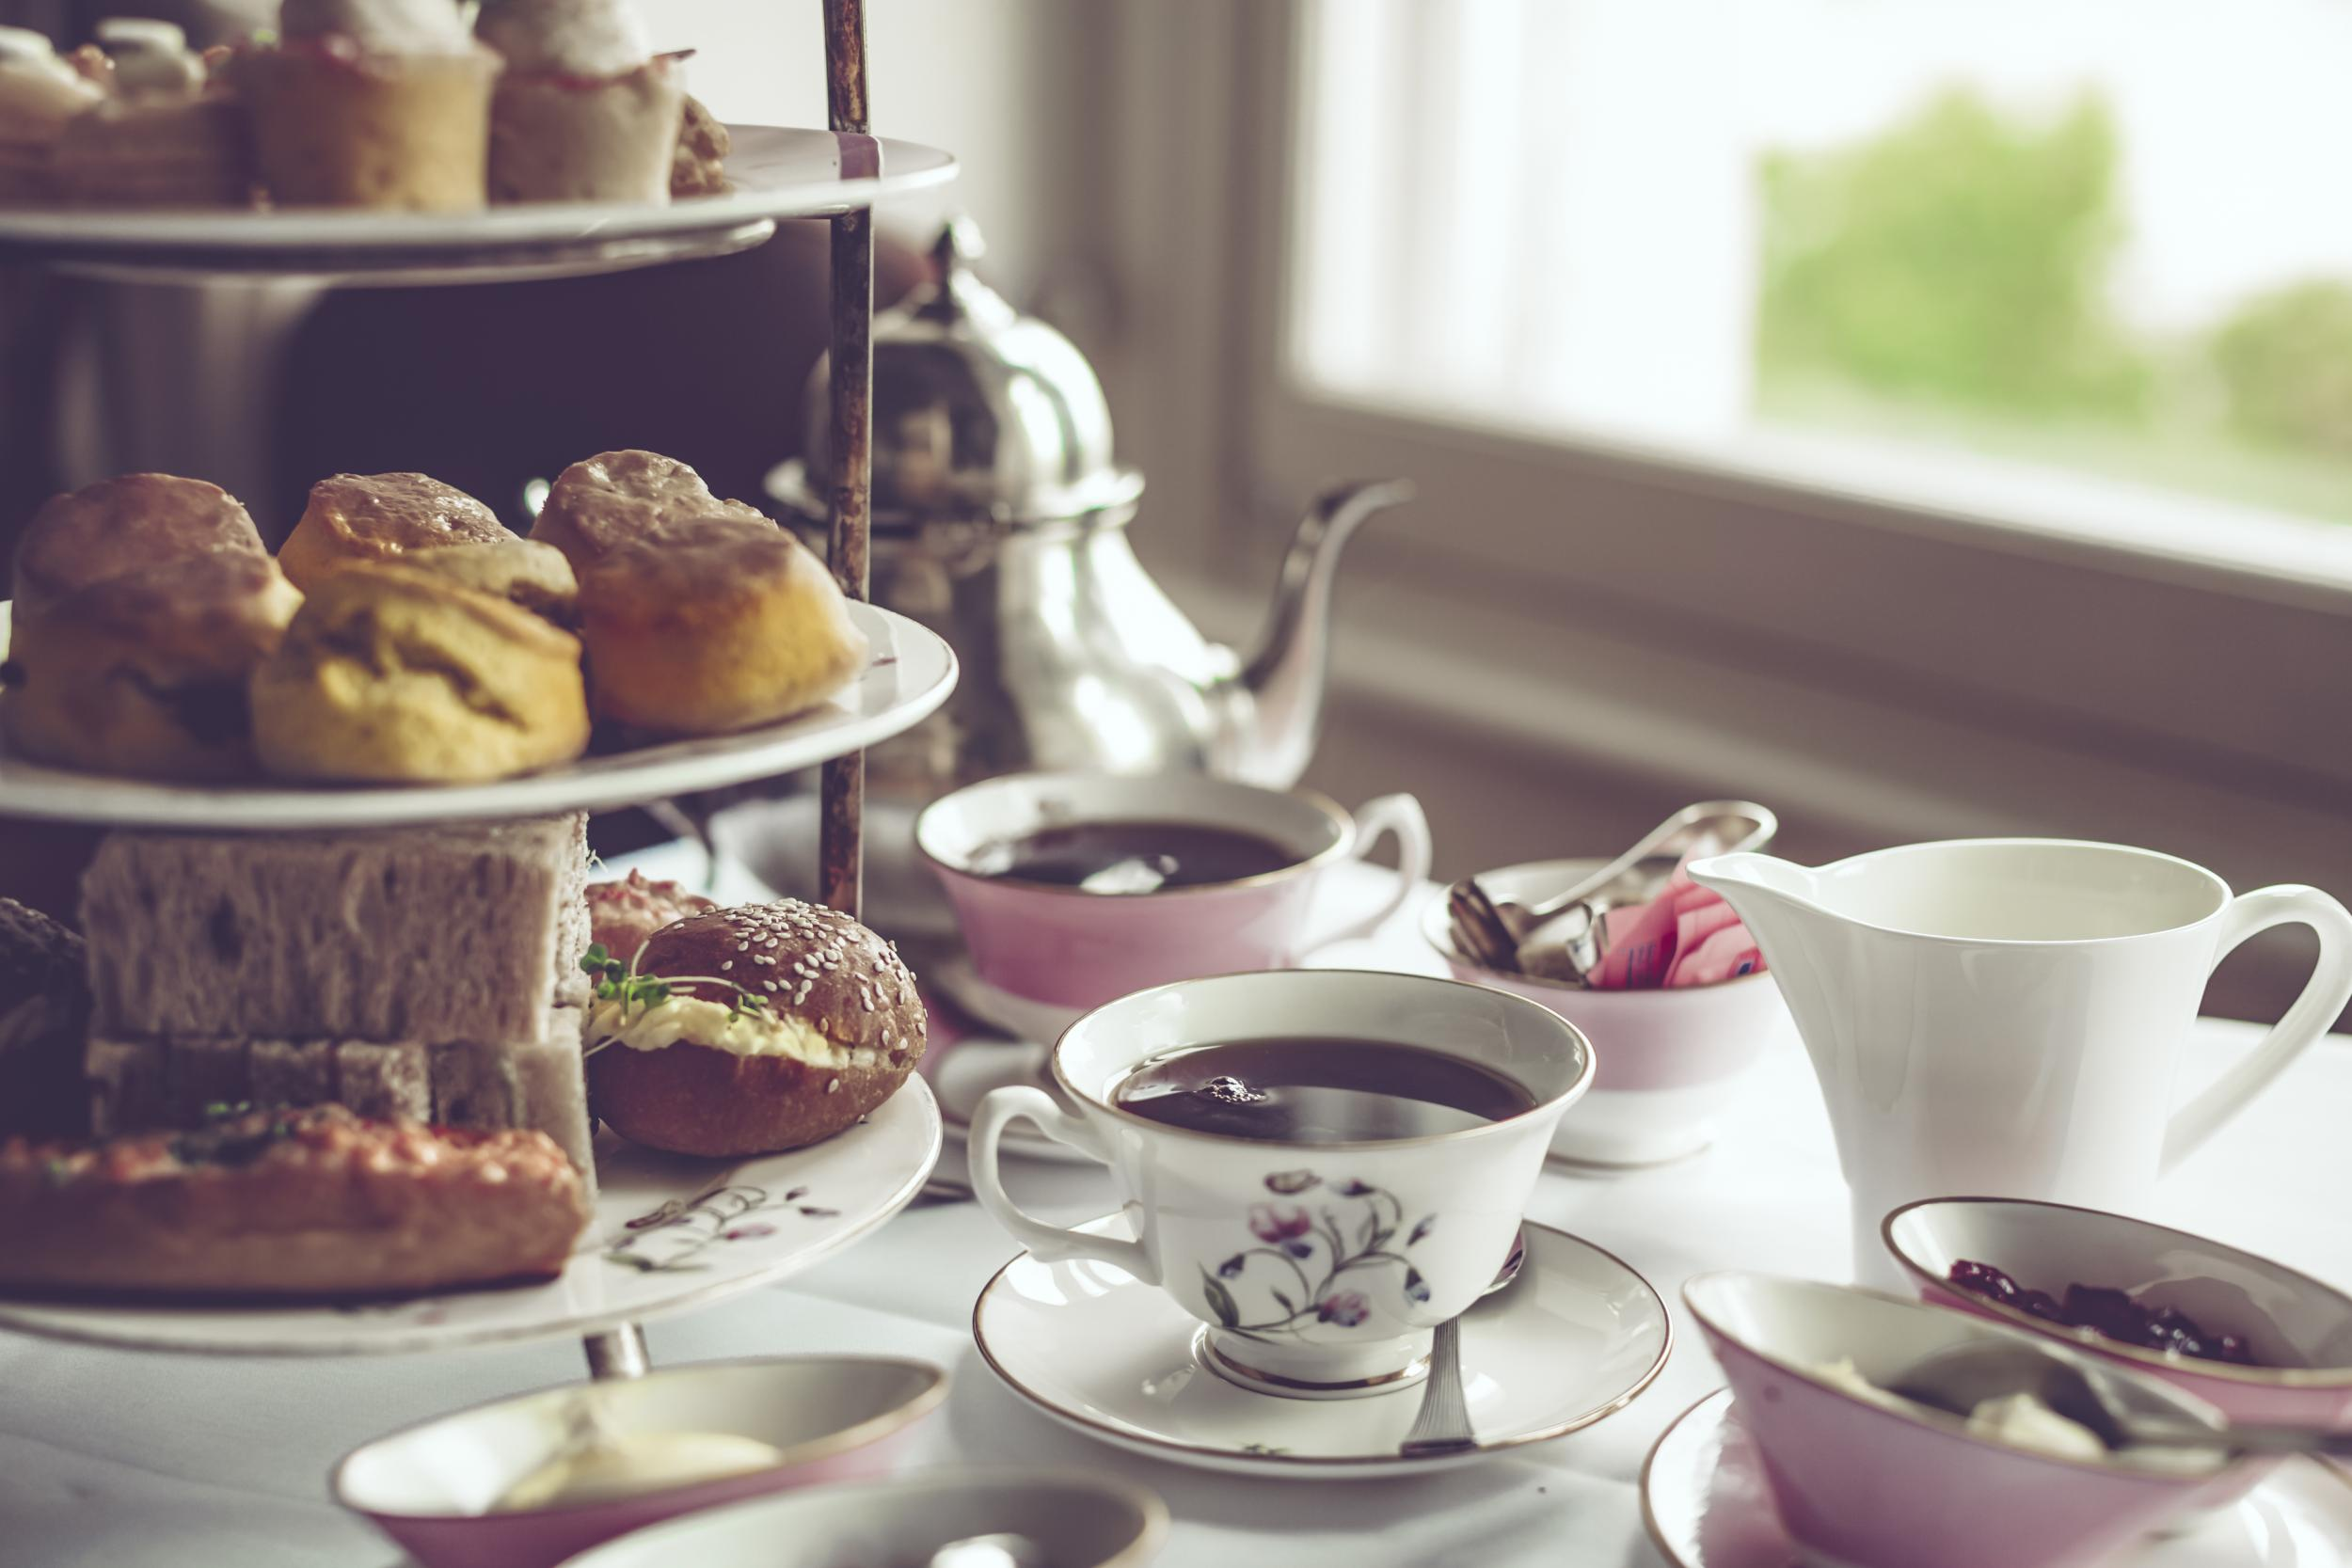 The best hotels in London for afternoon tea